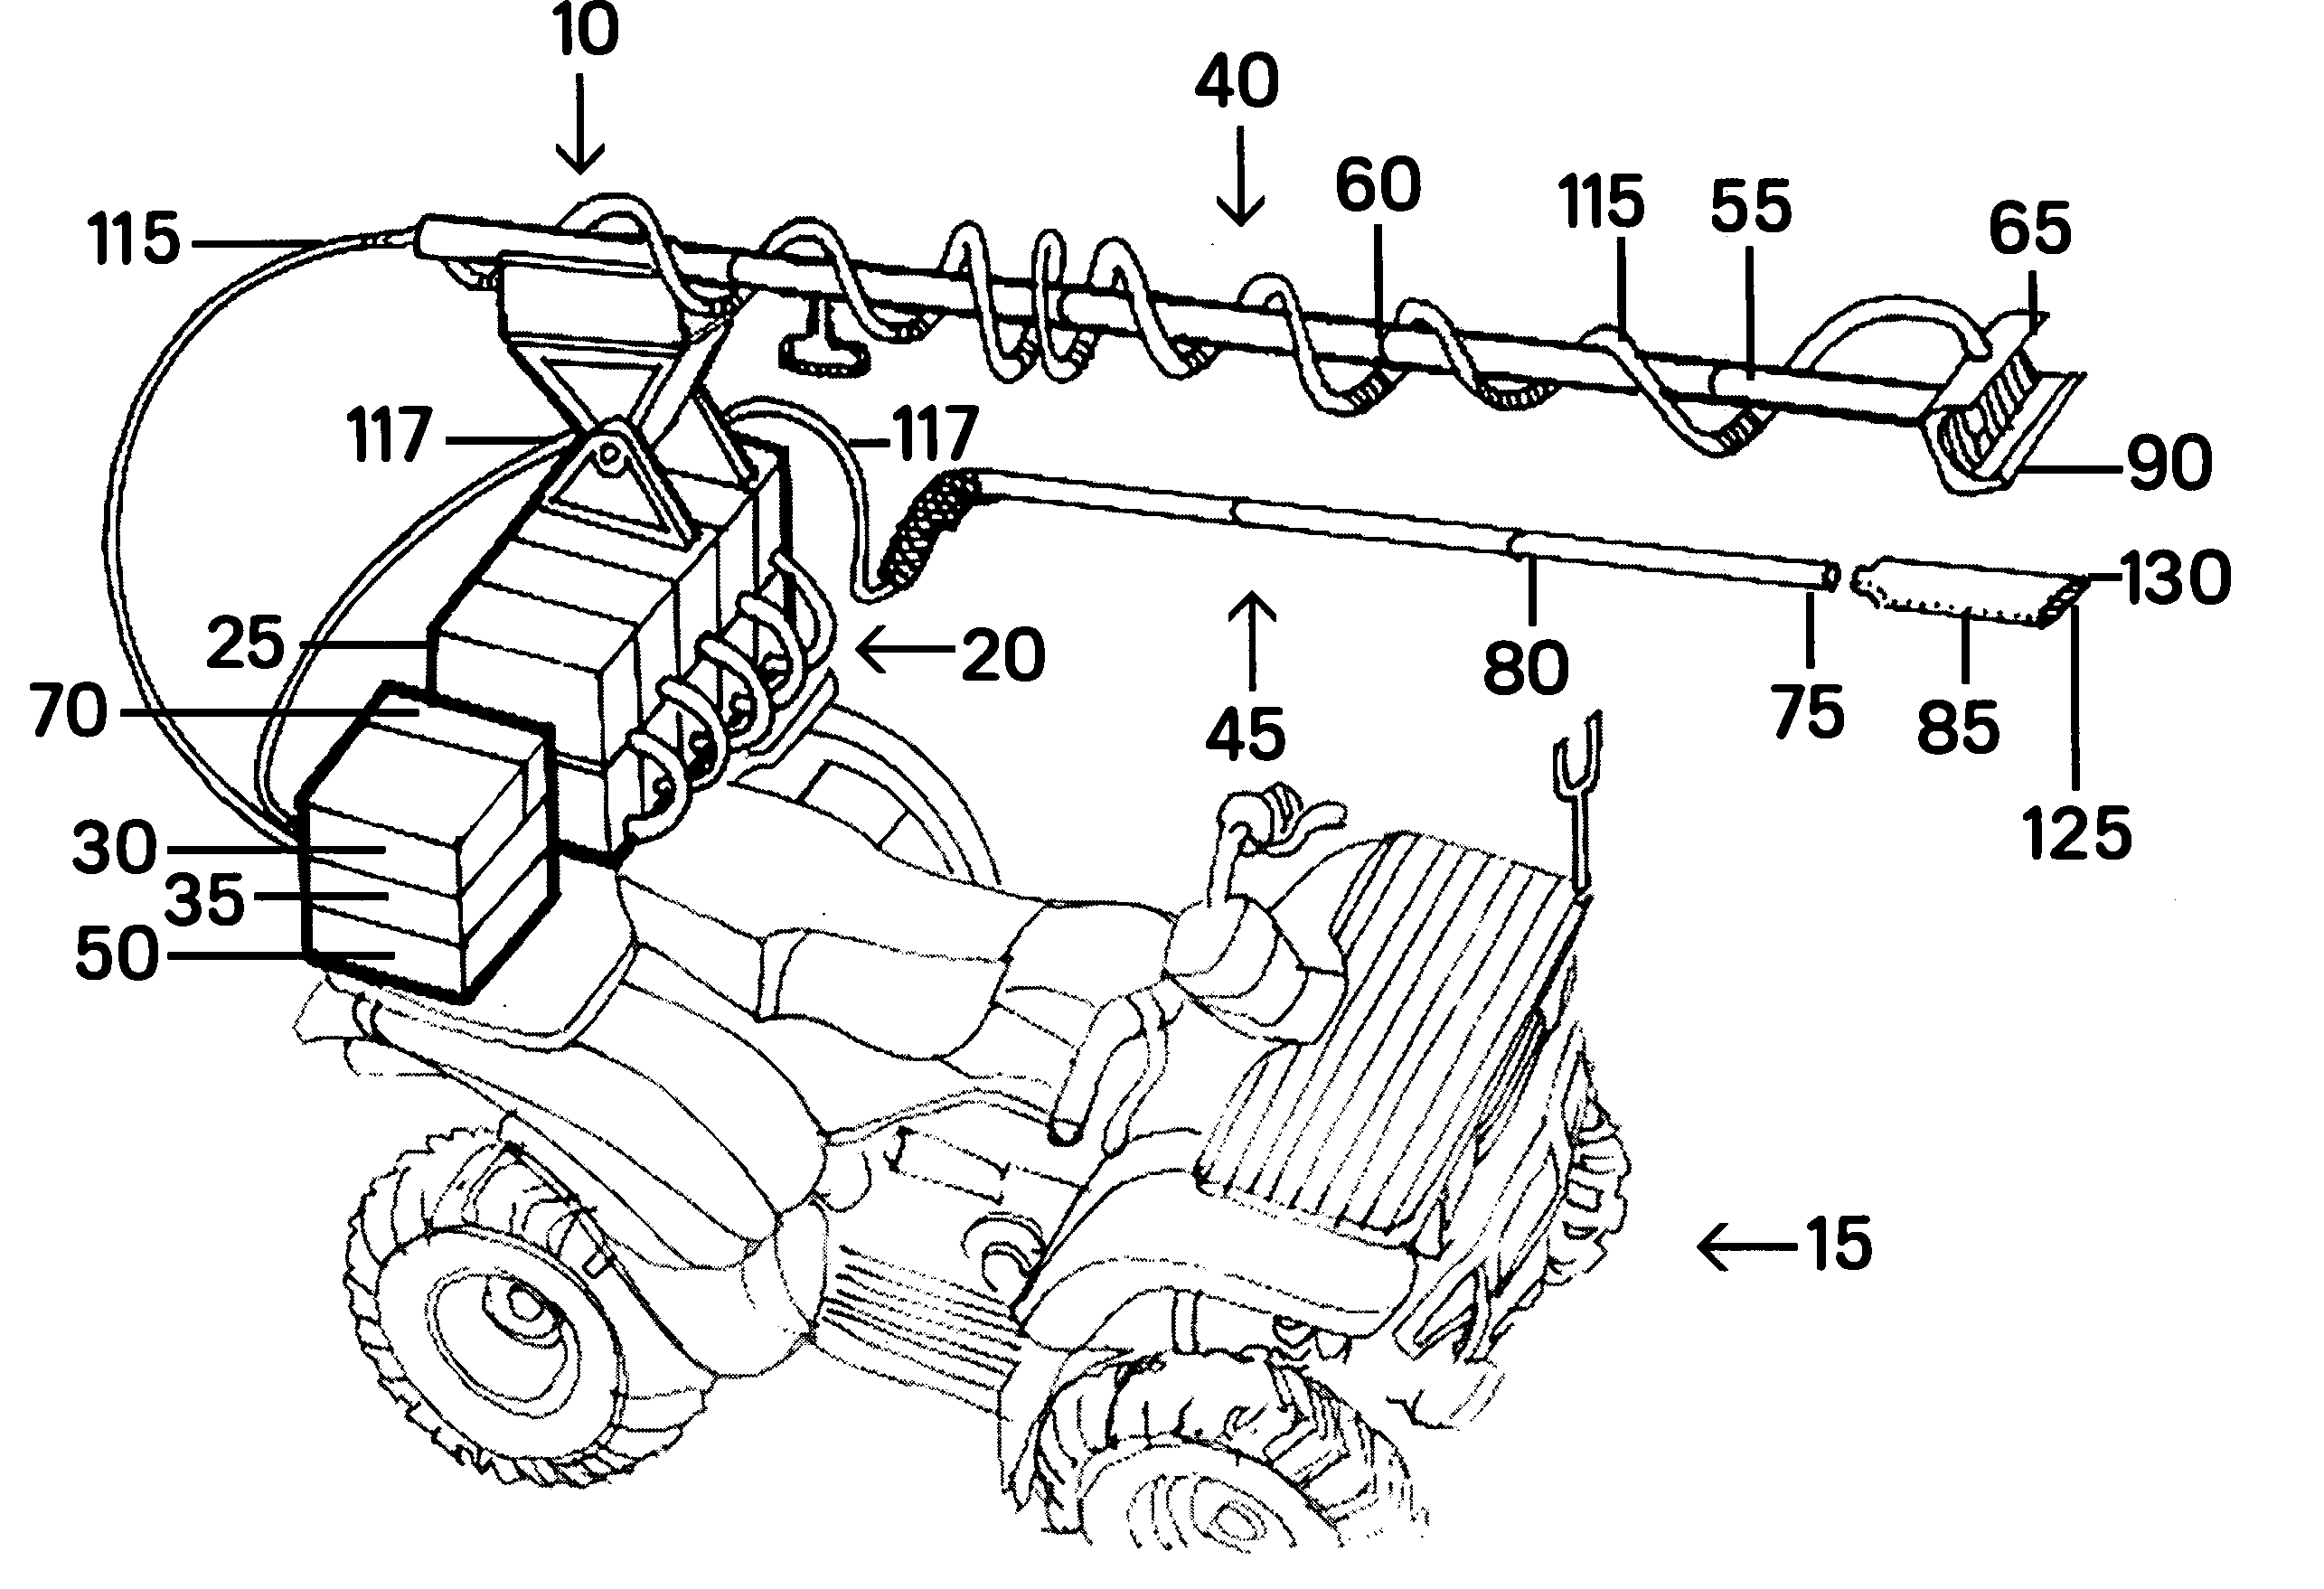 424 international tractor wiring diagram 424 discover your 424 international tractor hydraulics diagram 140 farmall wiring